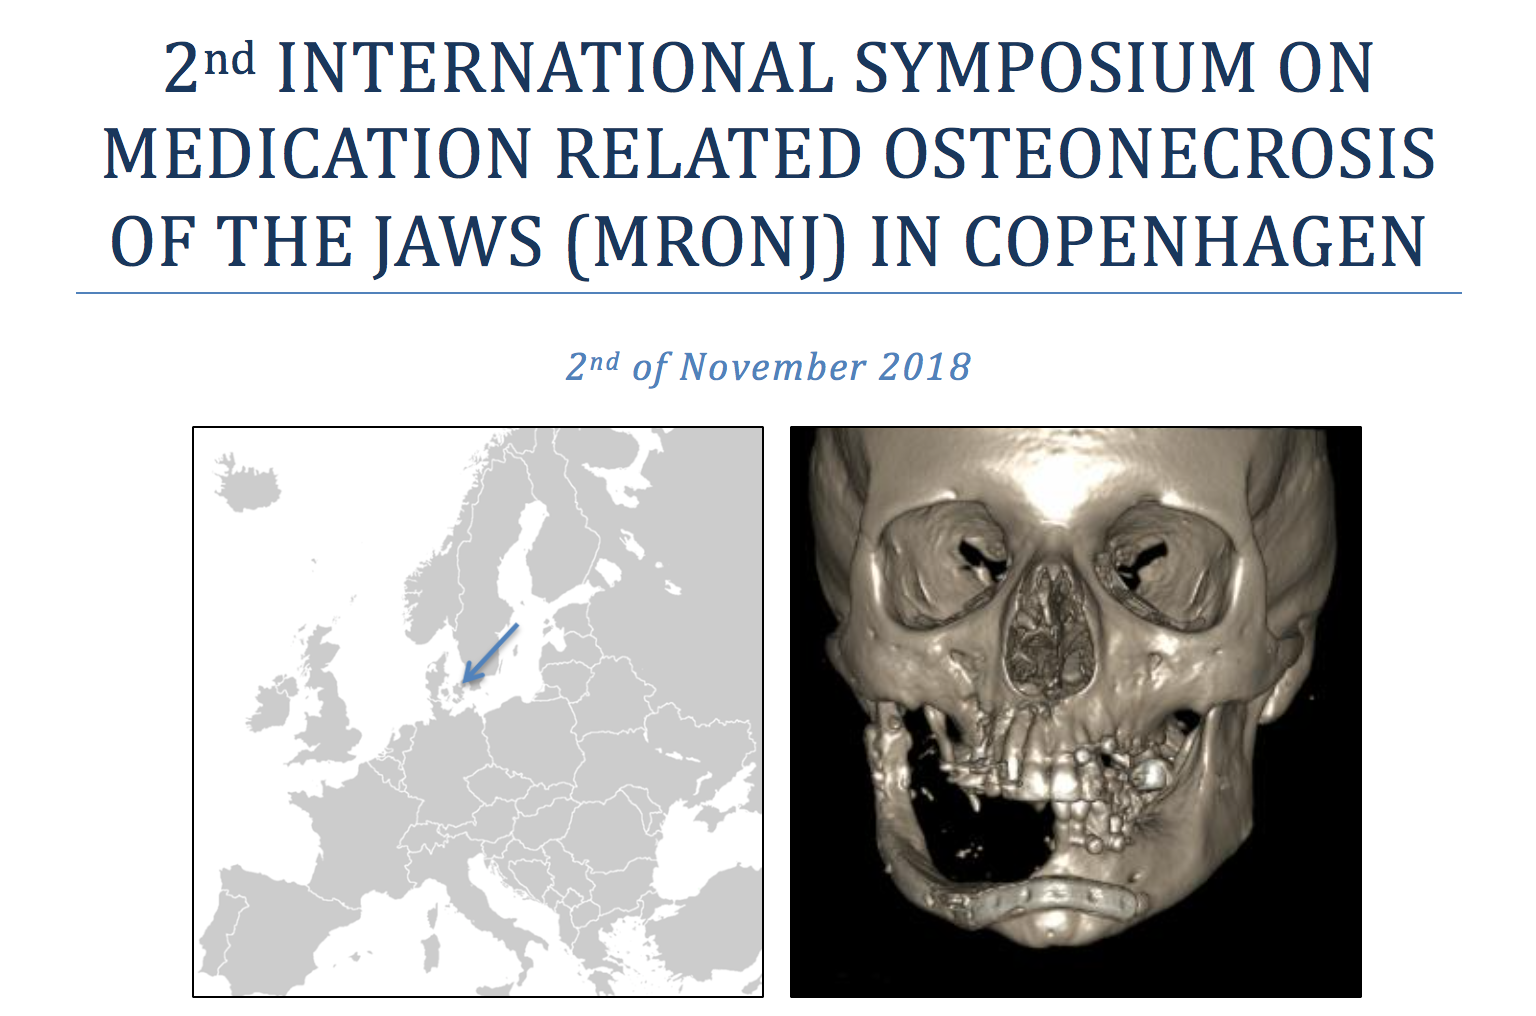 2nd international symposium on medication related osteonecrosis of the jaws (MRONJ)